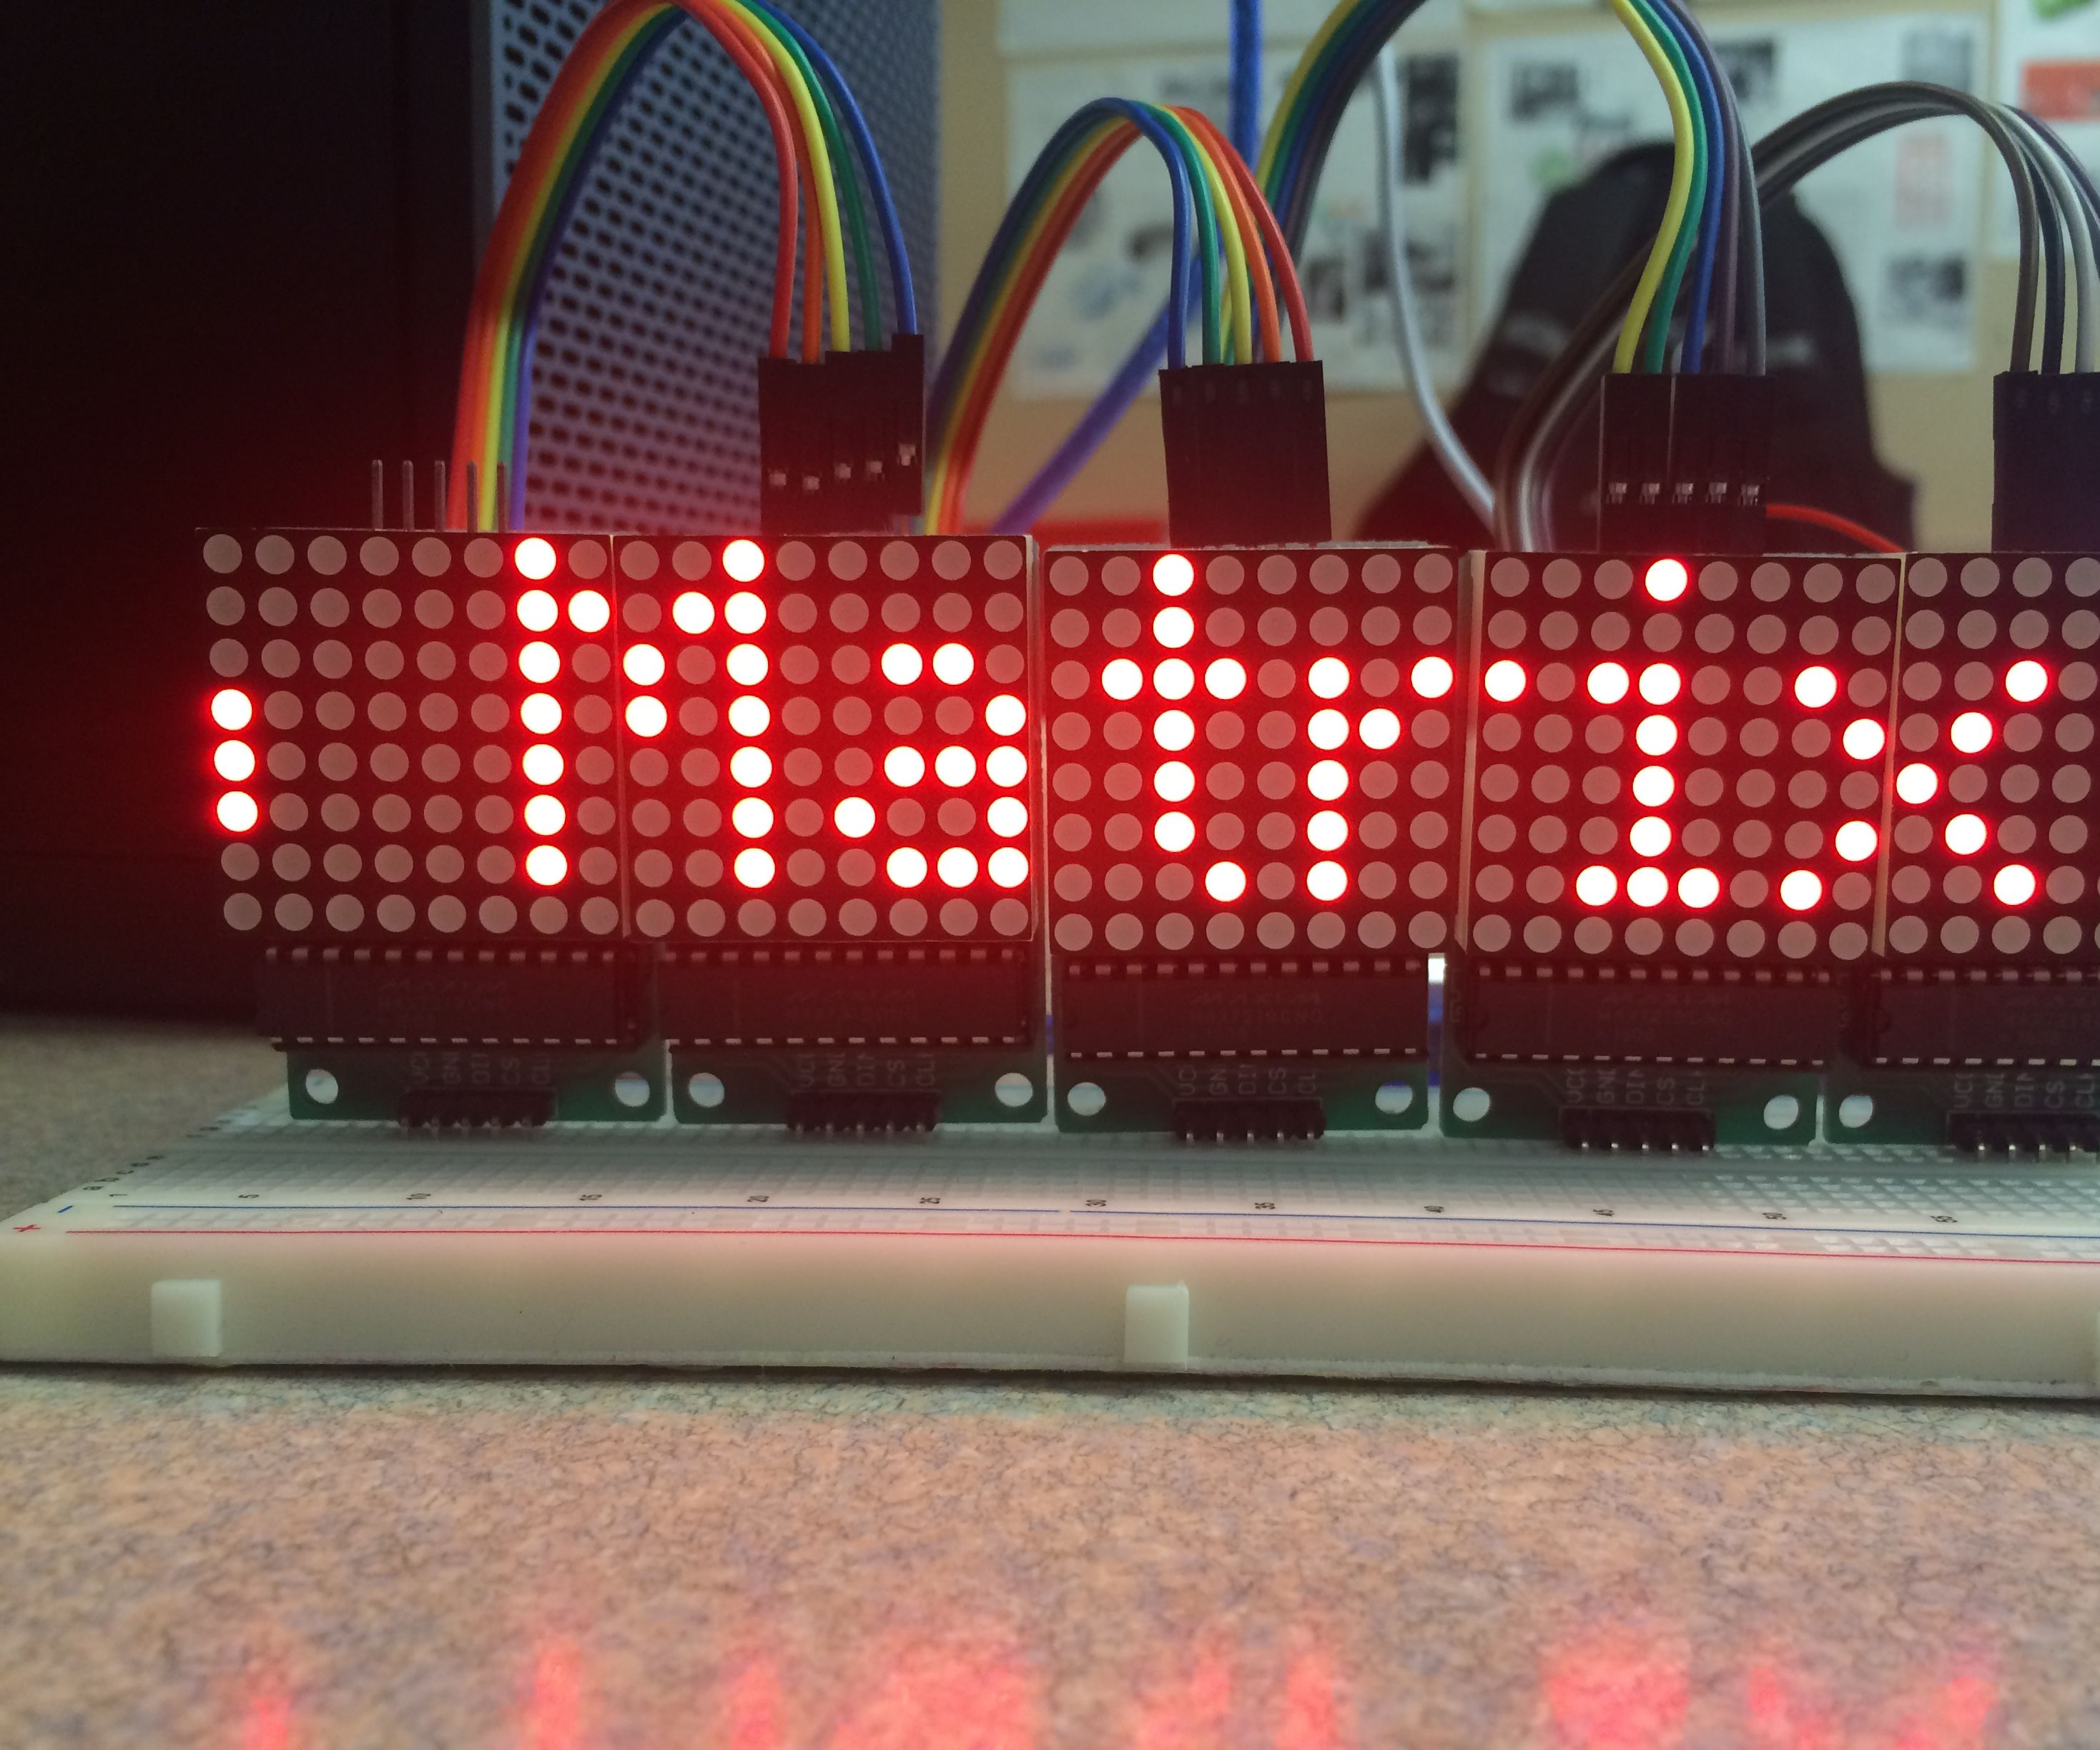 Scrolling Text on a 8x8 LED Matrix Using an Arduino UNO: 5 Steps